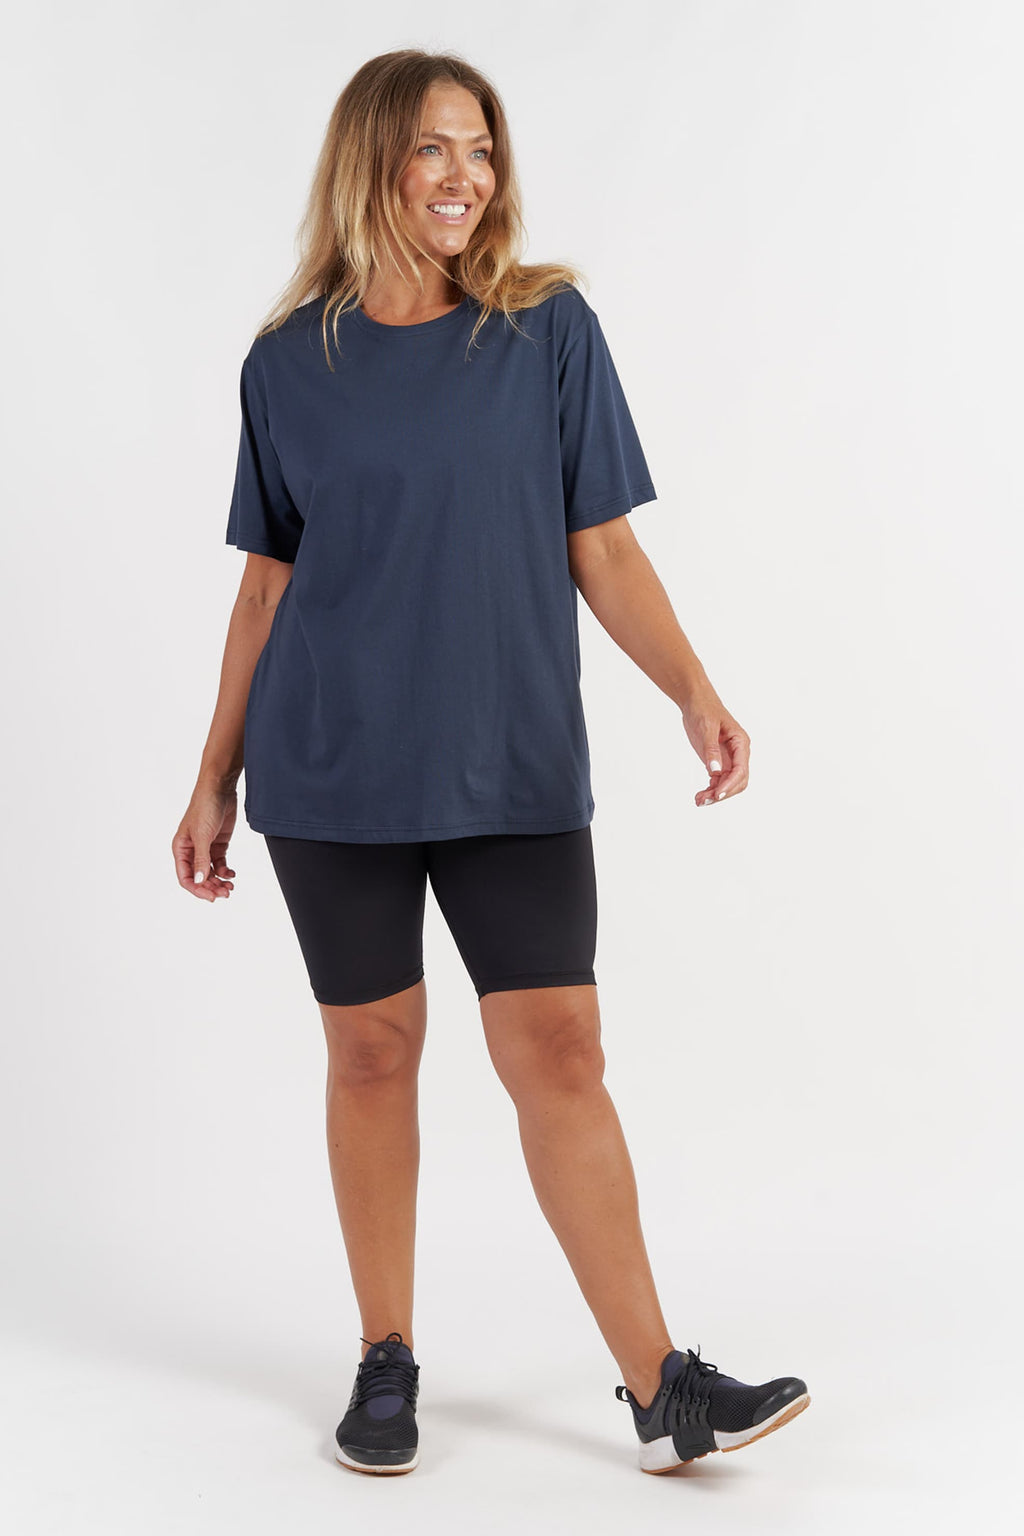 activewear-oversized-tee-navy-large-front